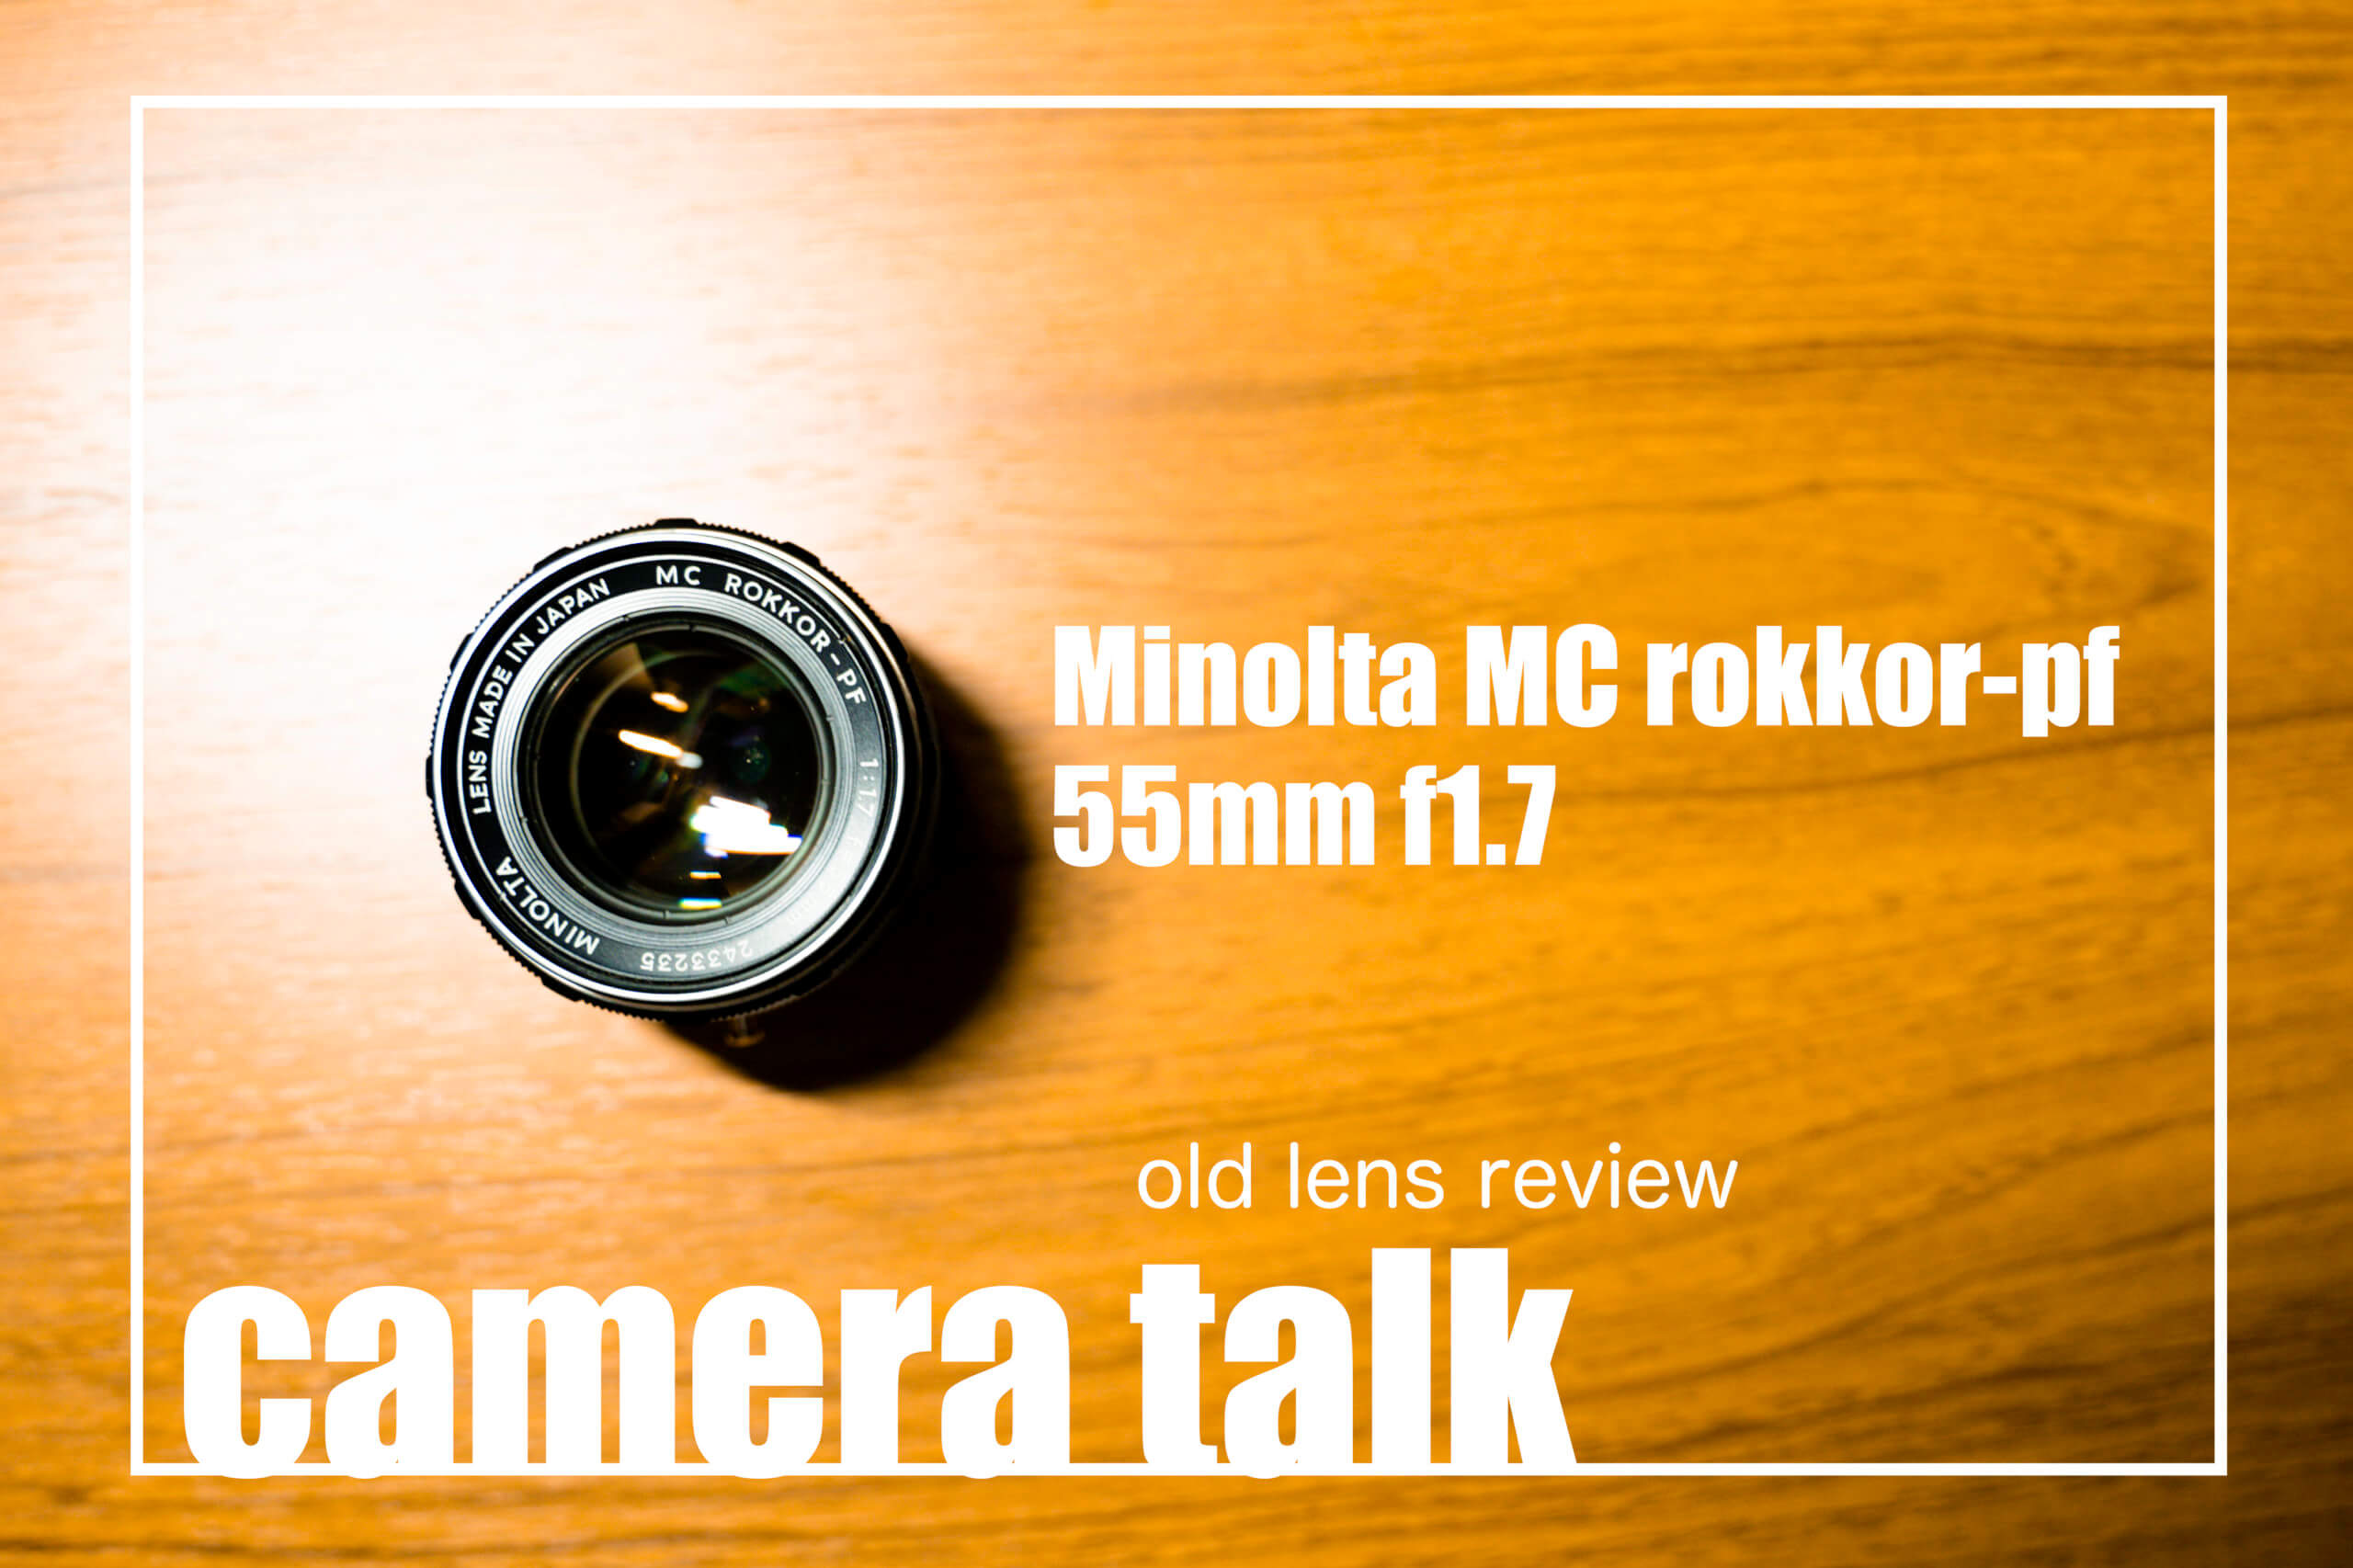 camera talk 《オールドレンズ「Minolta MC rokkor-pf 55mm f1.7」 レビュー》